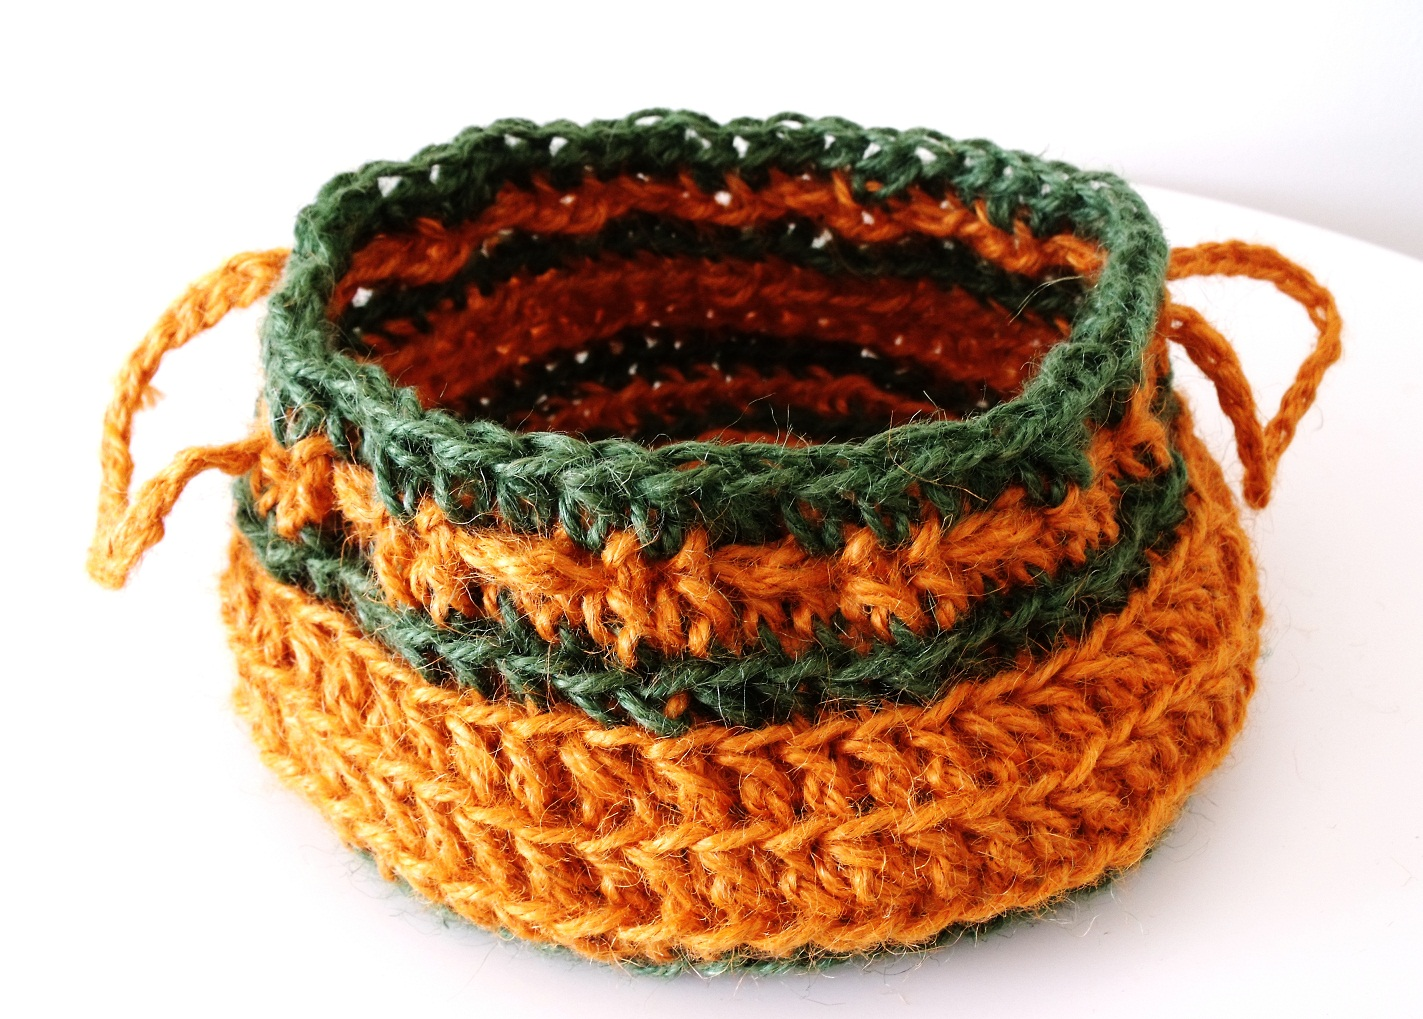 MICROCKNIT CREATIONS: COLOURFUL CROCHET BASKETS